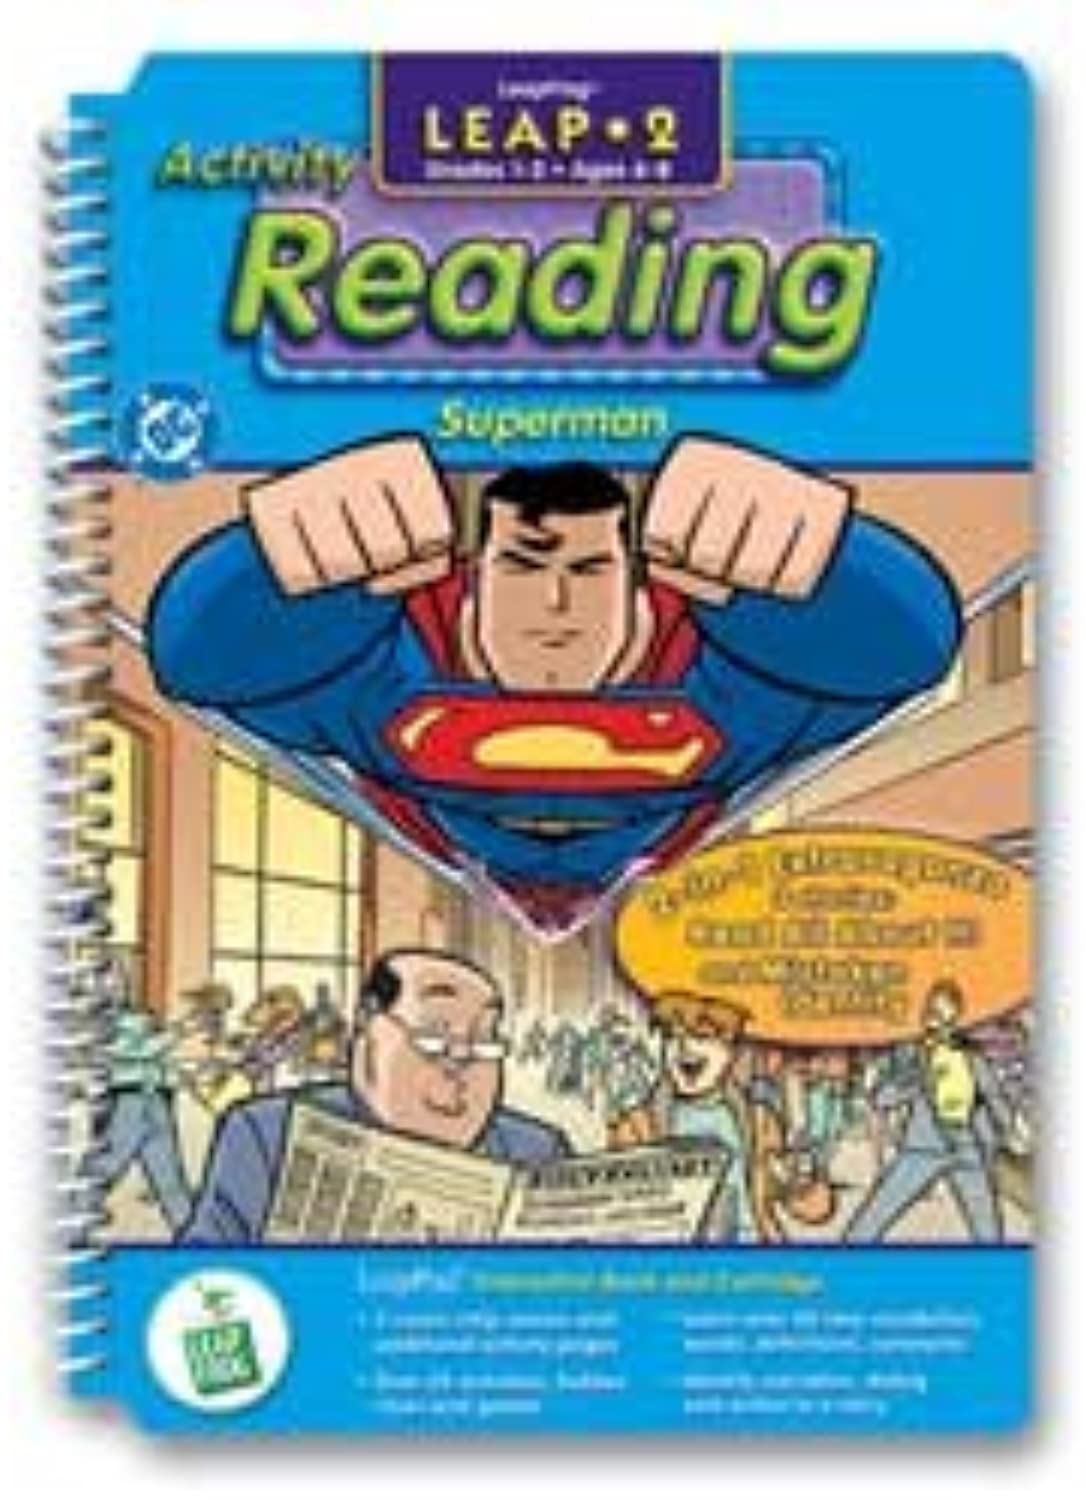 LeapFrog LeapPad  Leap 2 Reading   Superman  Interactive Book and Cartridge